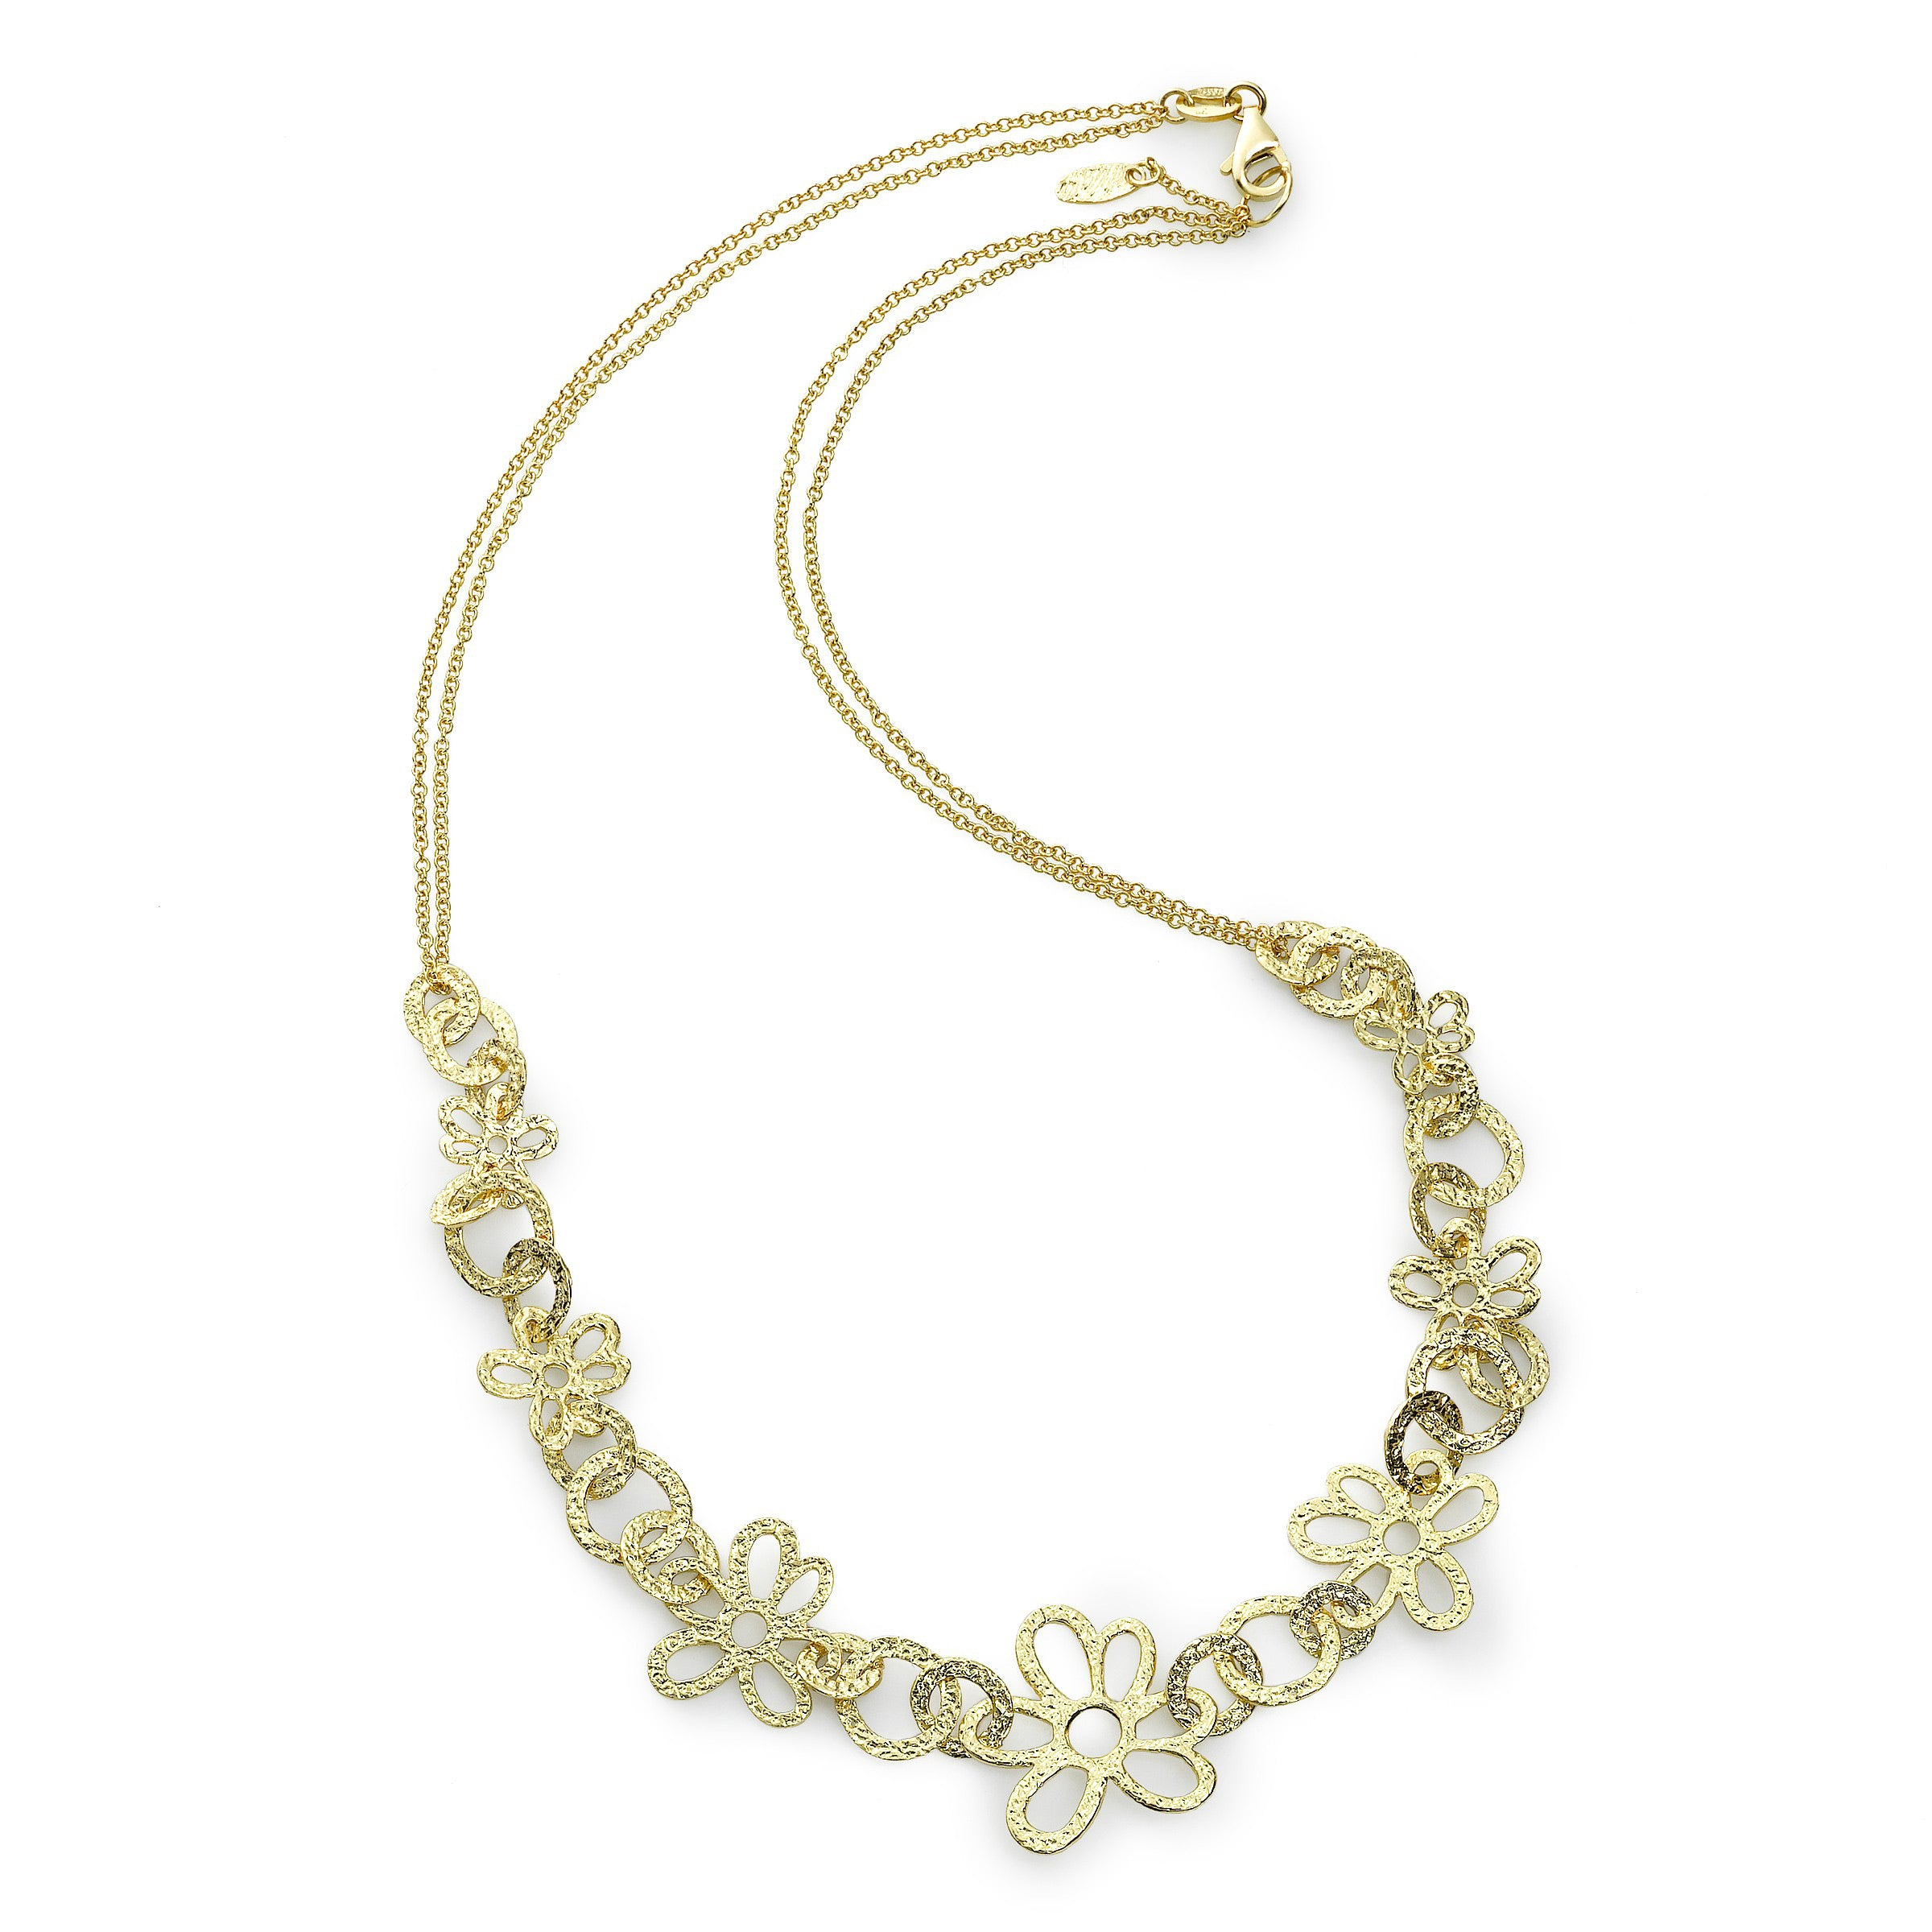 Open Flower Design Necklace, 16 Inches, 14K Yellow Gold